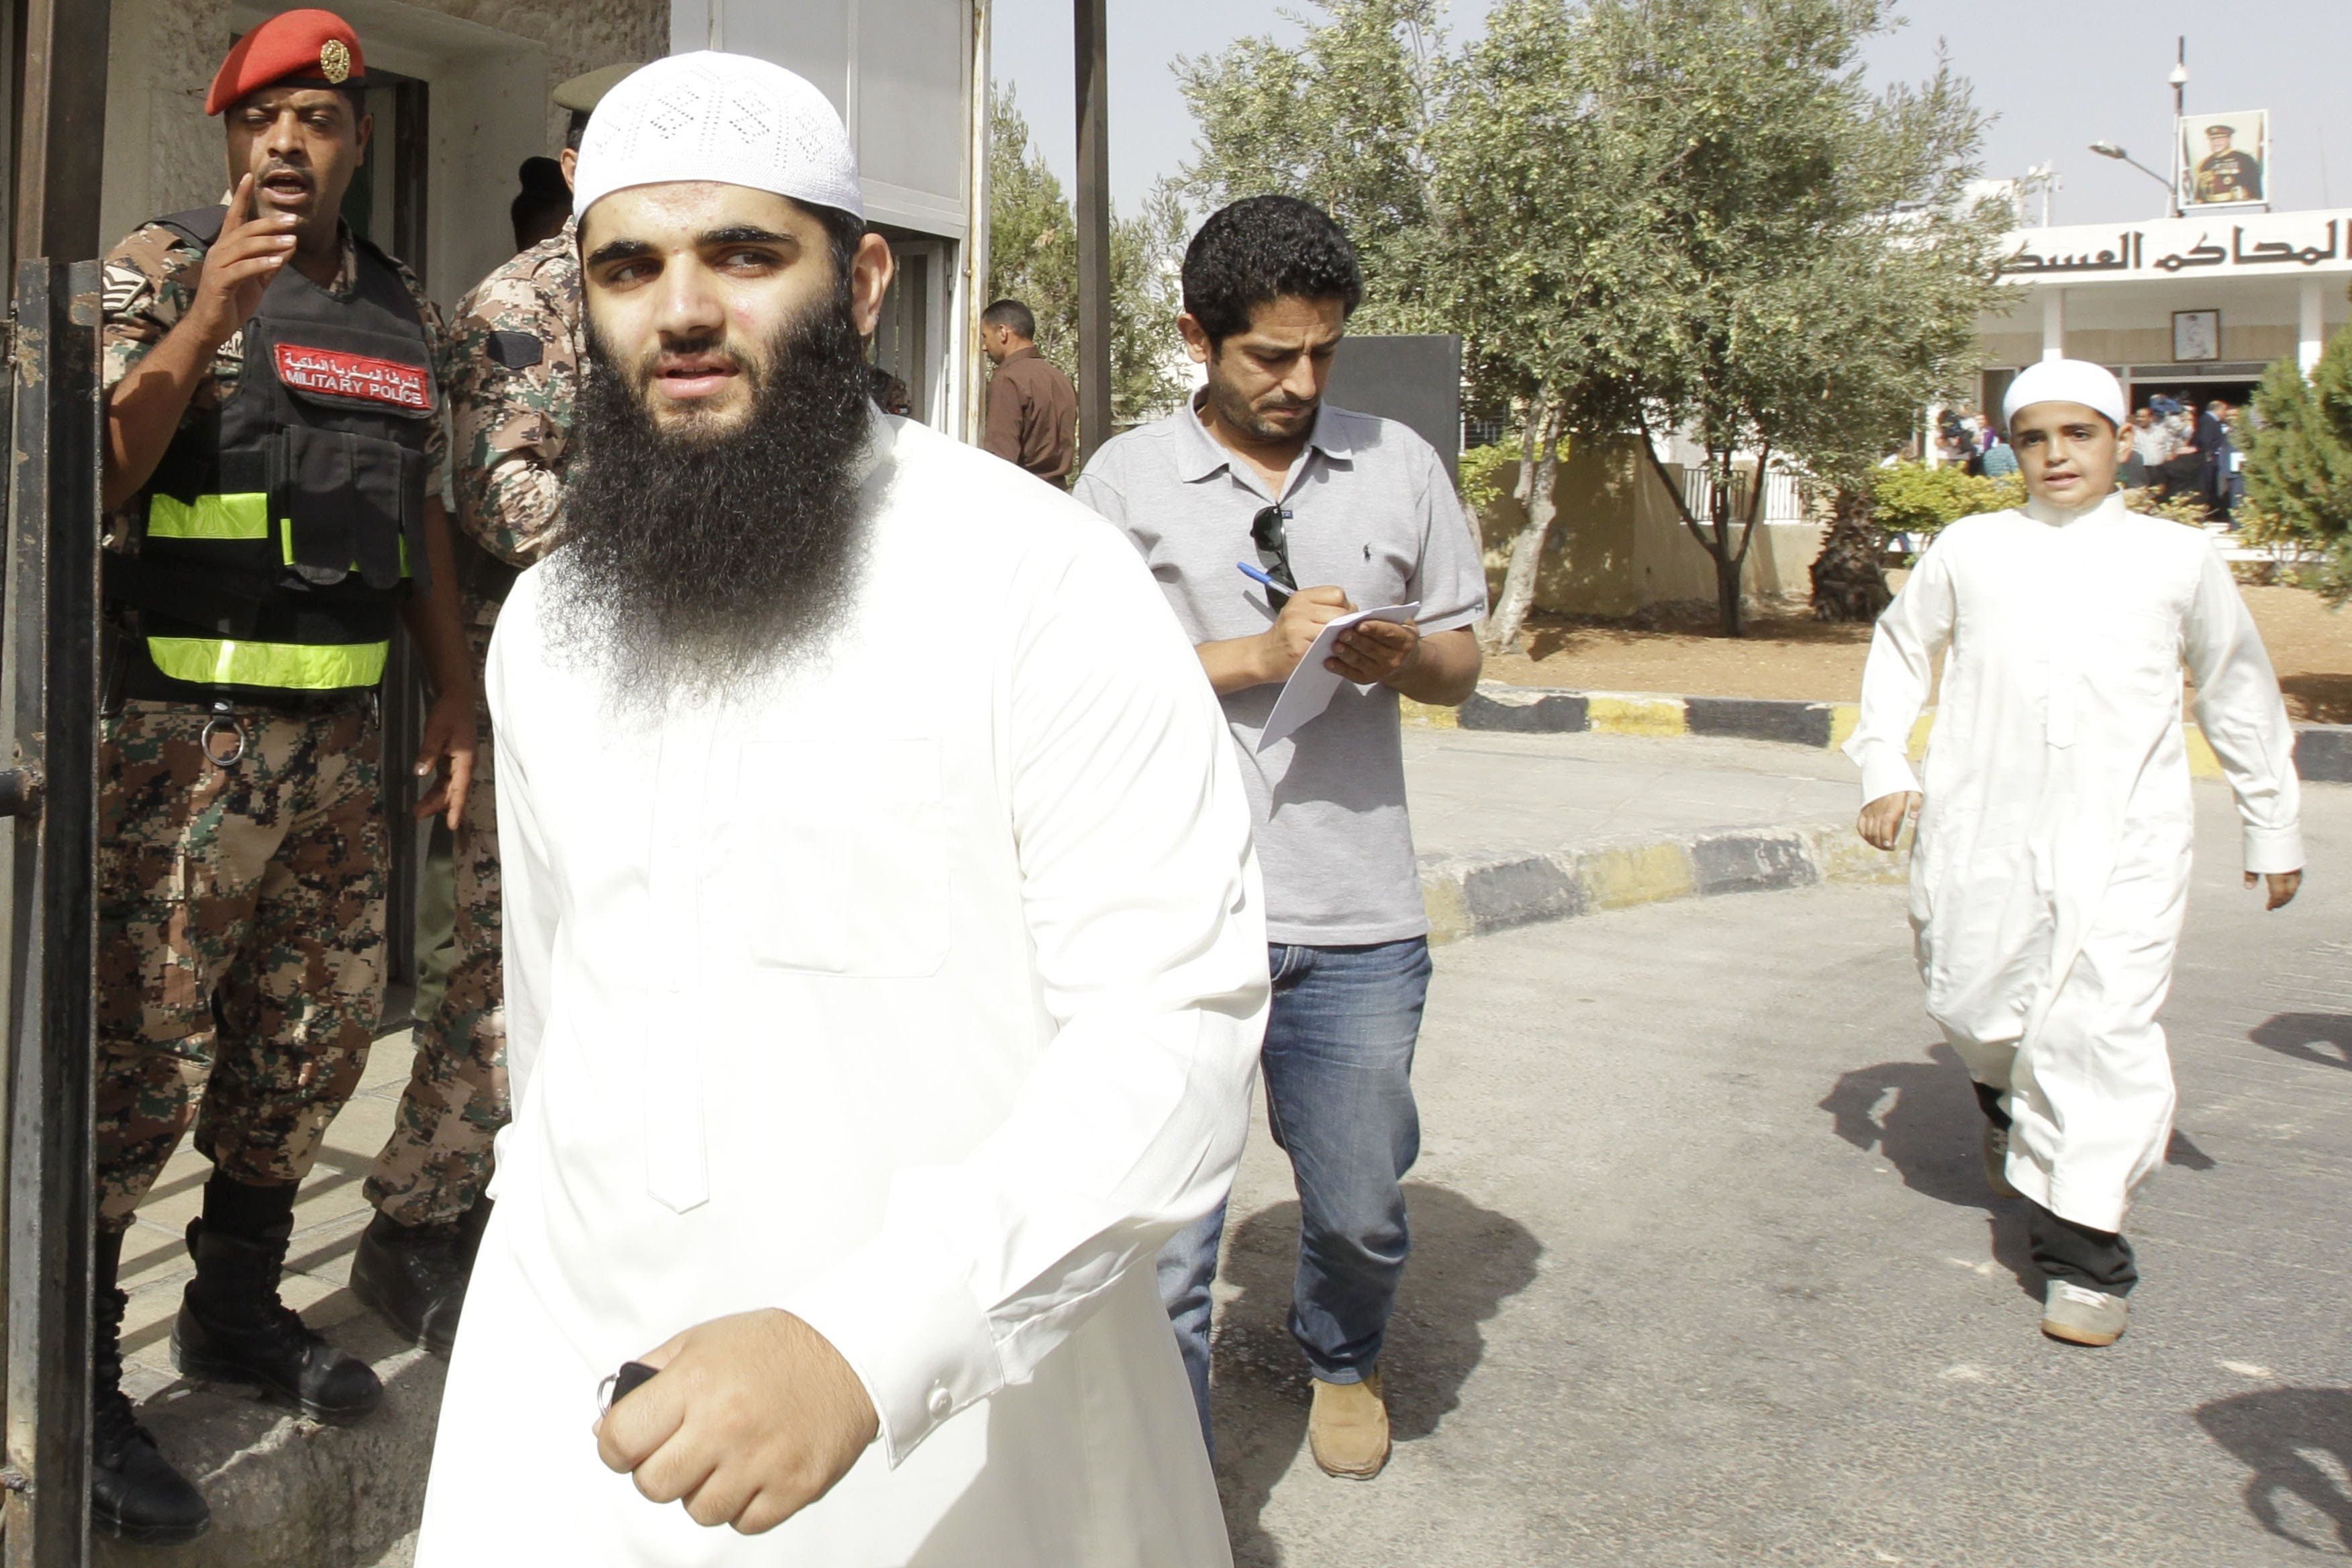 Relatives of radical Islamist cleric Abu Qatada, are pictured outside the Jordanian State Security court in Amman. (AFP)